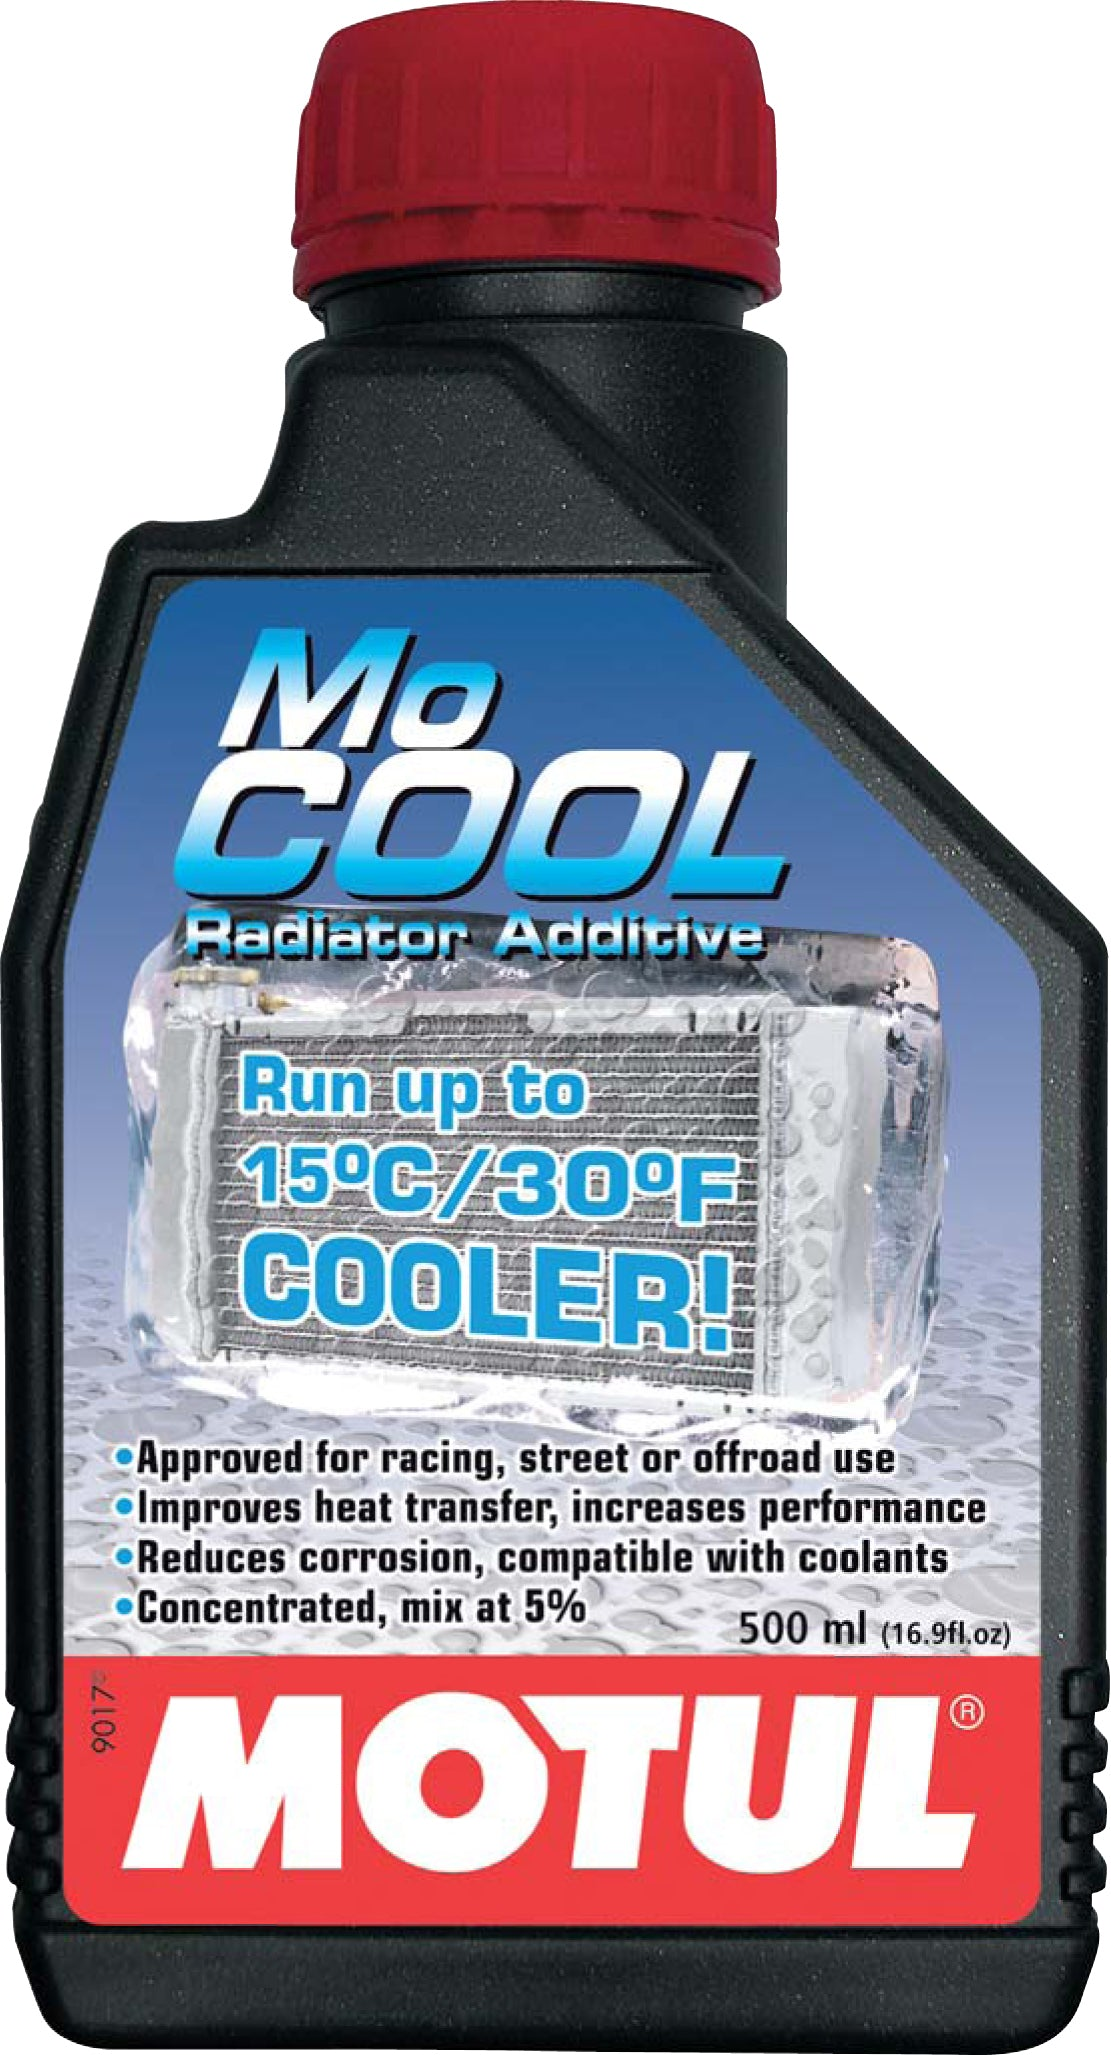 MOTUL COOLANT ADDITIVE MOCOOL